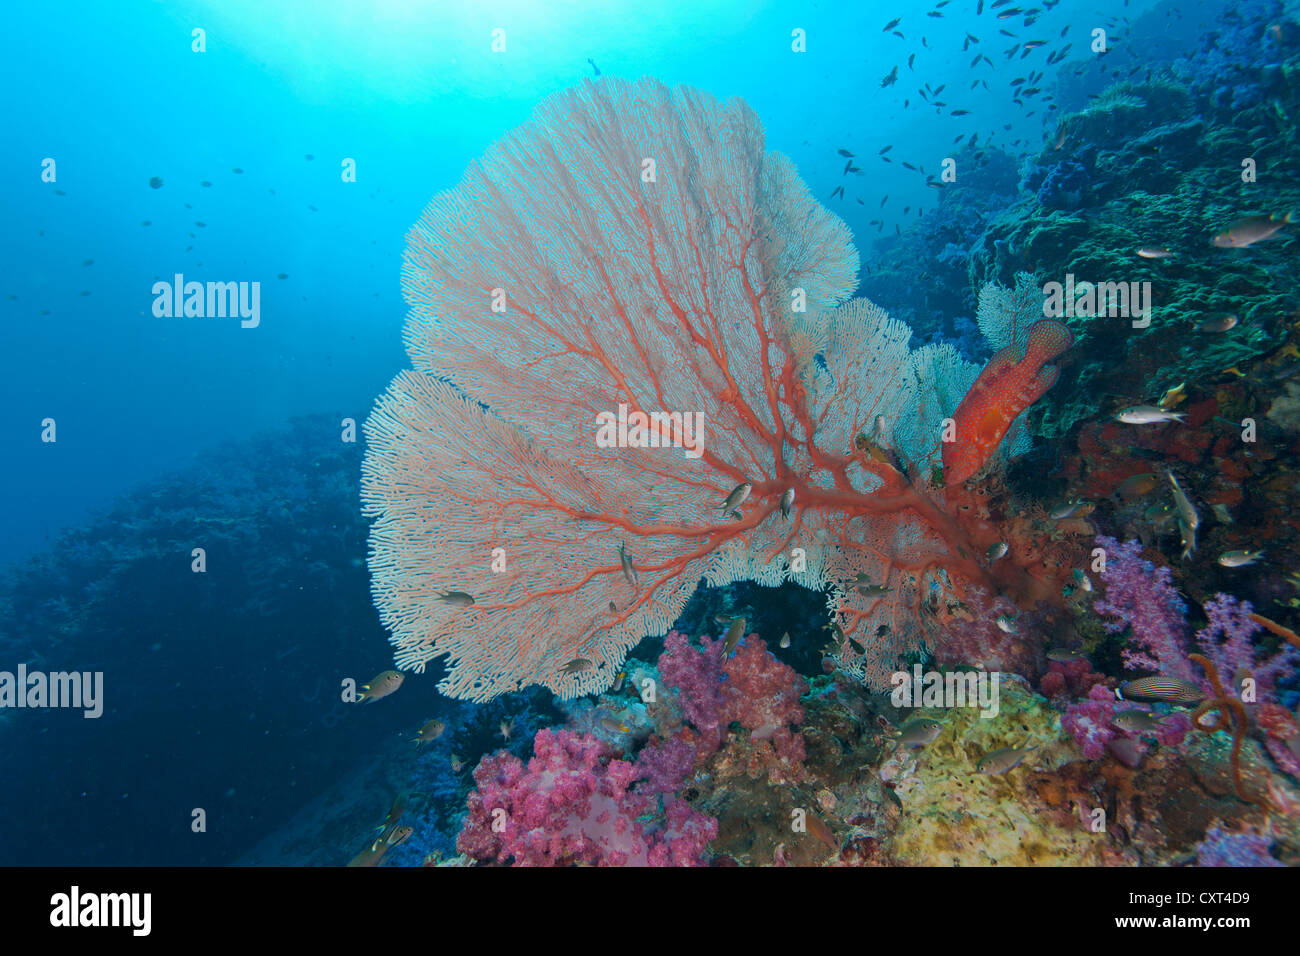 Vermillon Seabass, Jewel Grouper or Coral Hind (Cephalopholis miniata), swimming in the reef, Thailand, Asia - Stock Image